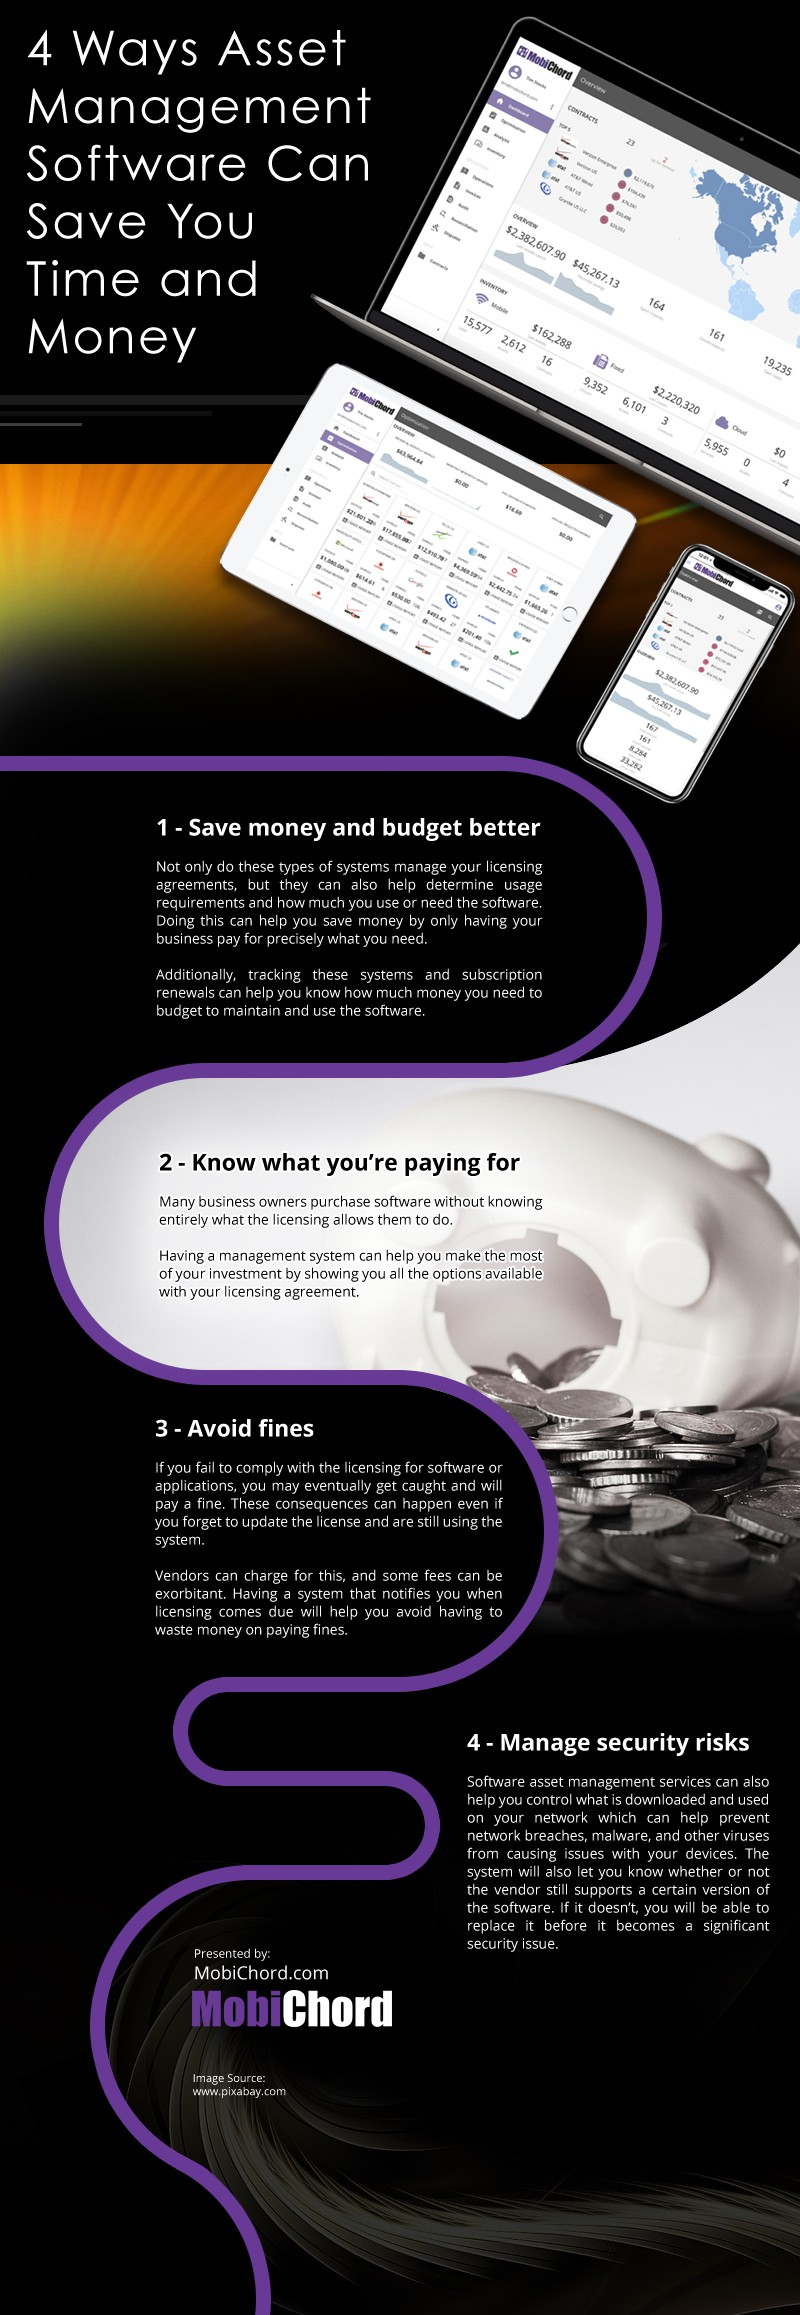 4 Ways Asset Management Software Can Save You Time and Money Infographic